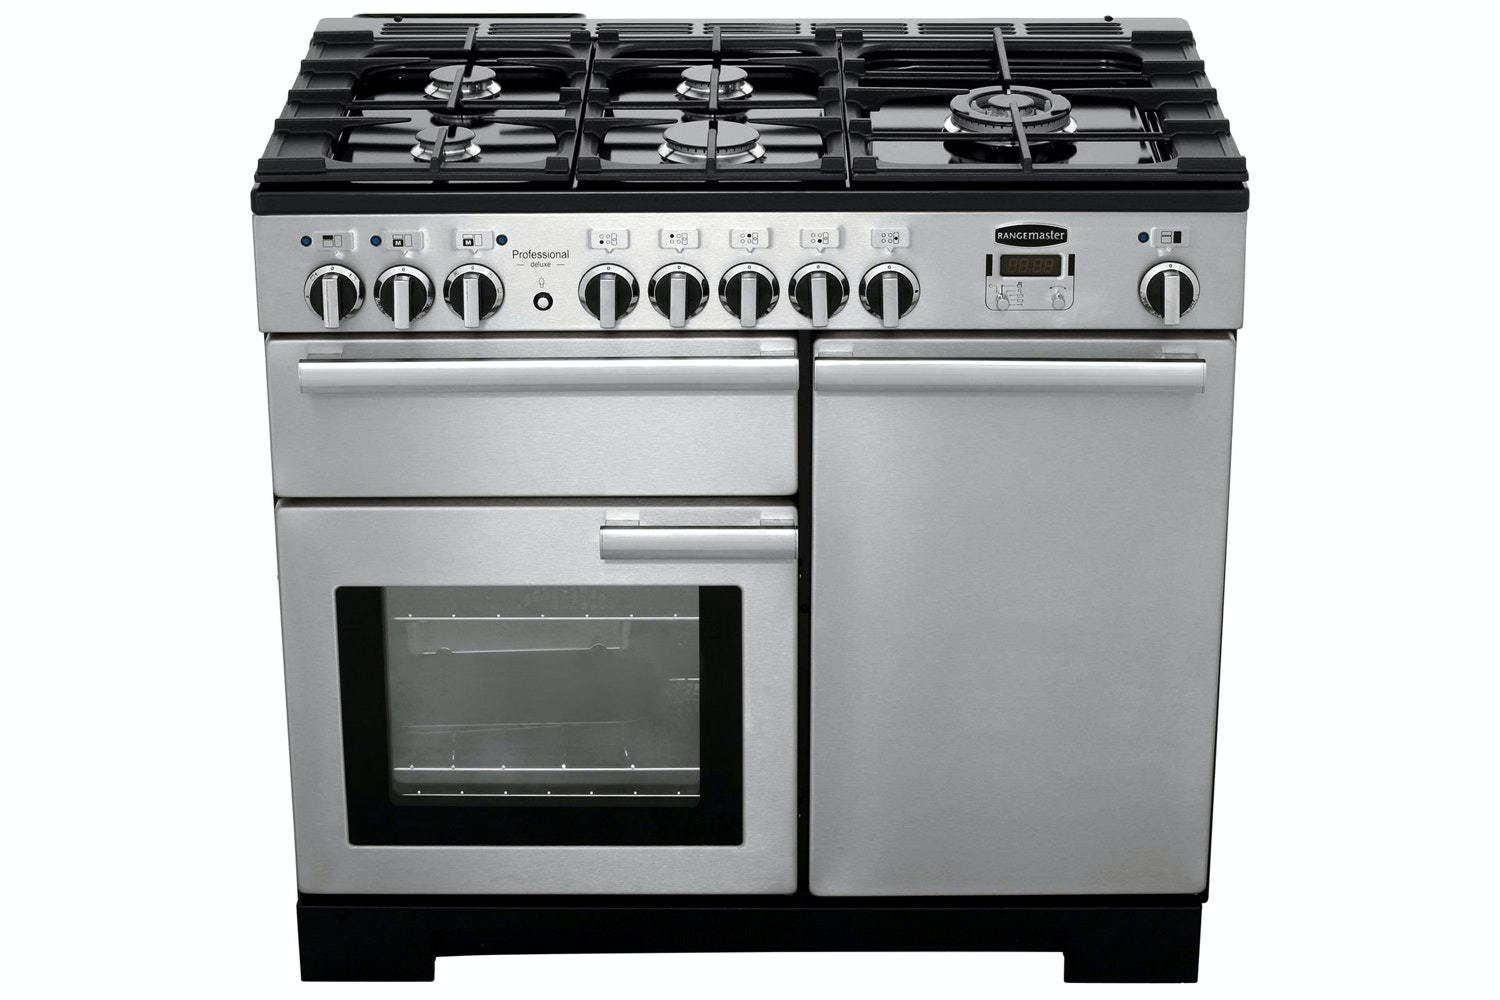 Rangemaster Professional Deluxe 100cm Dual Fuel Range Cooker | PDL100DFFSS/C | Stainless Steel